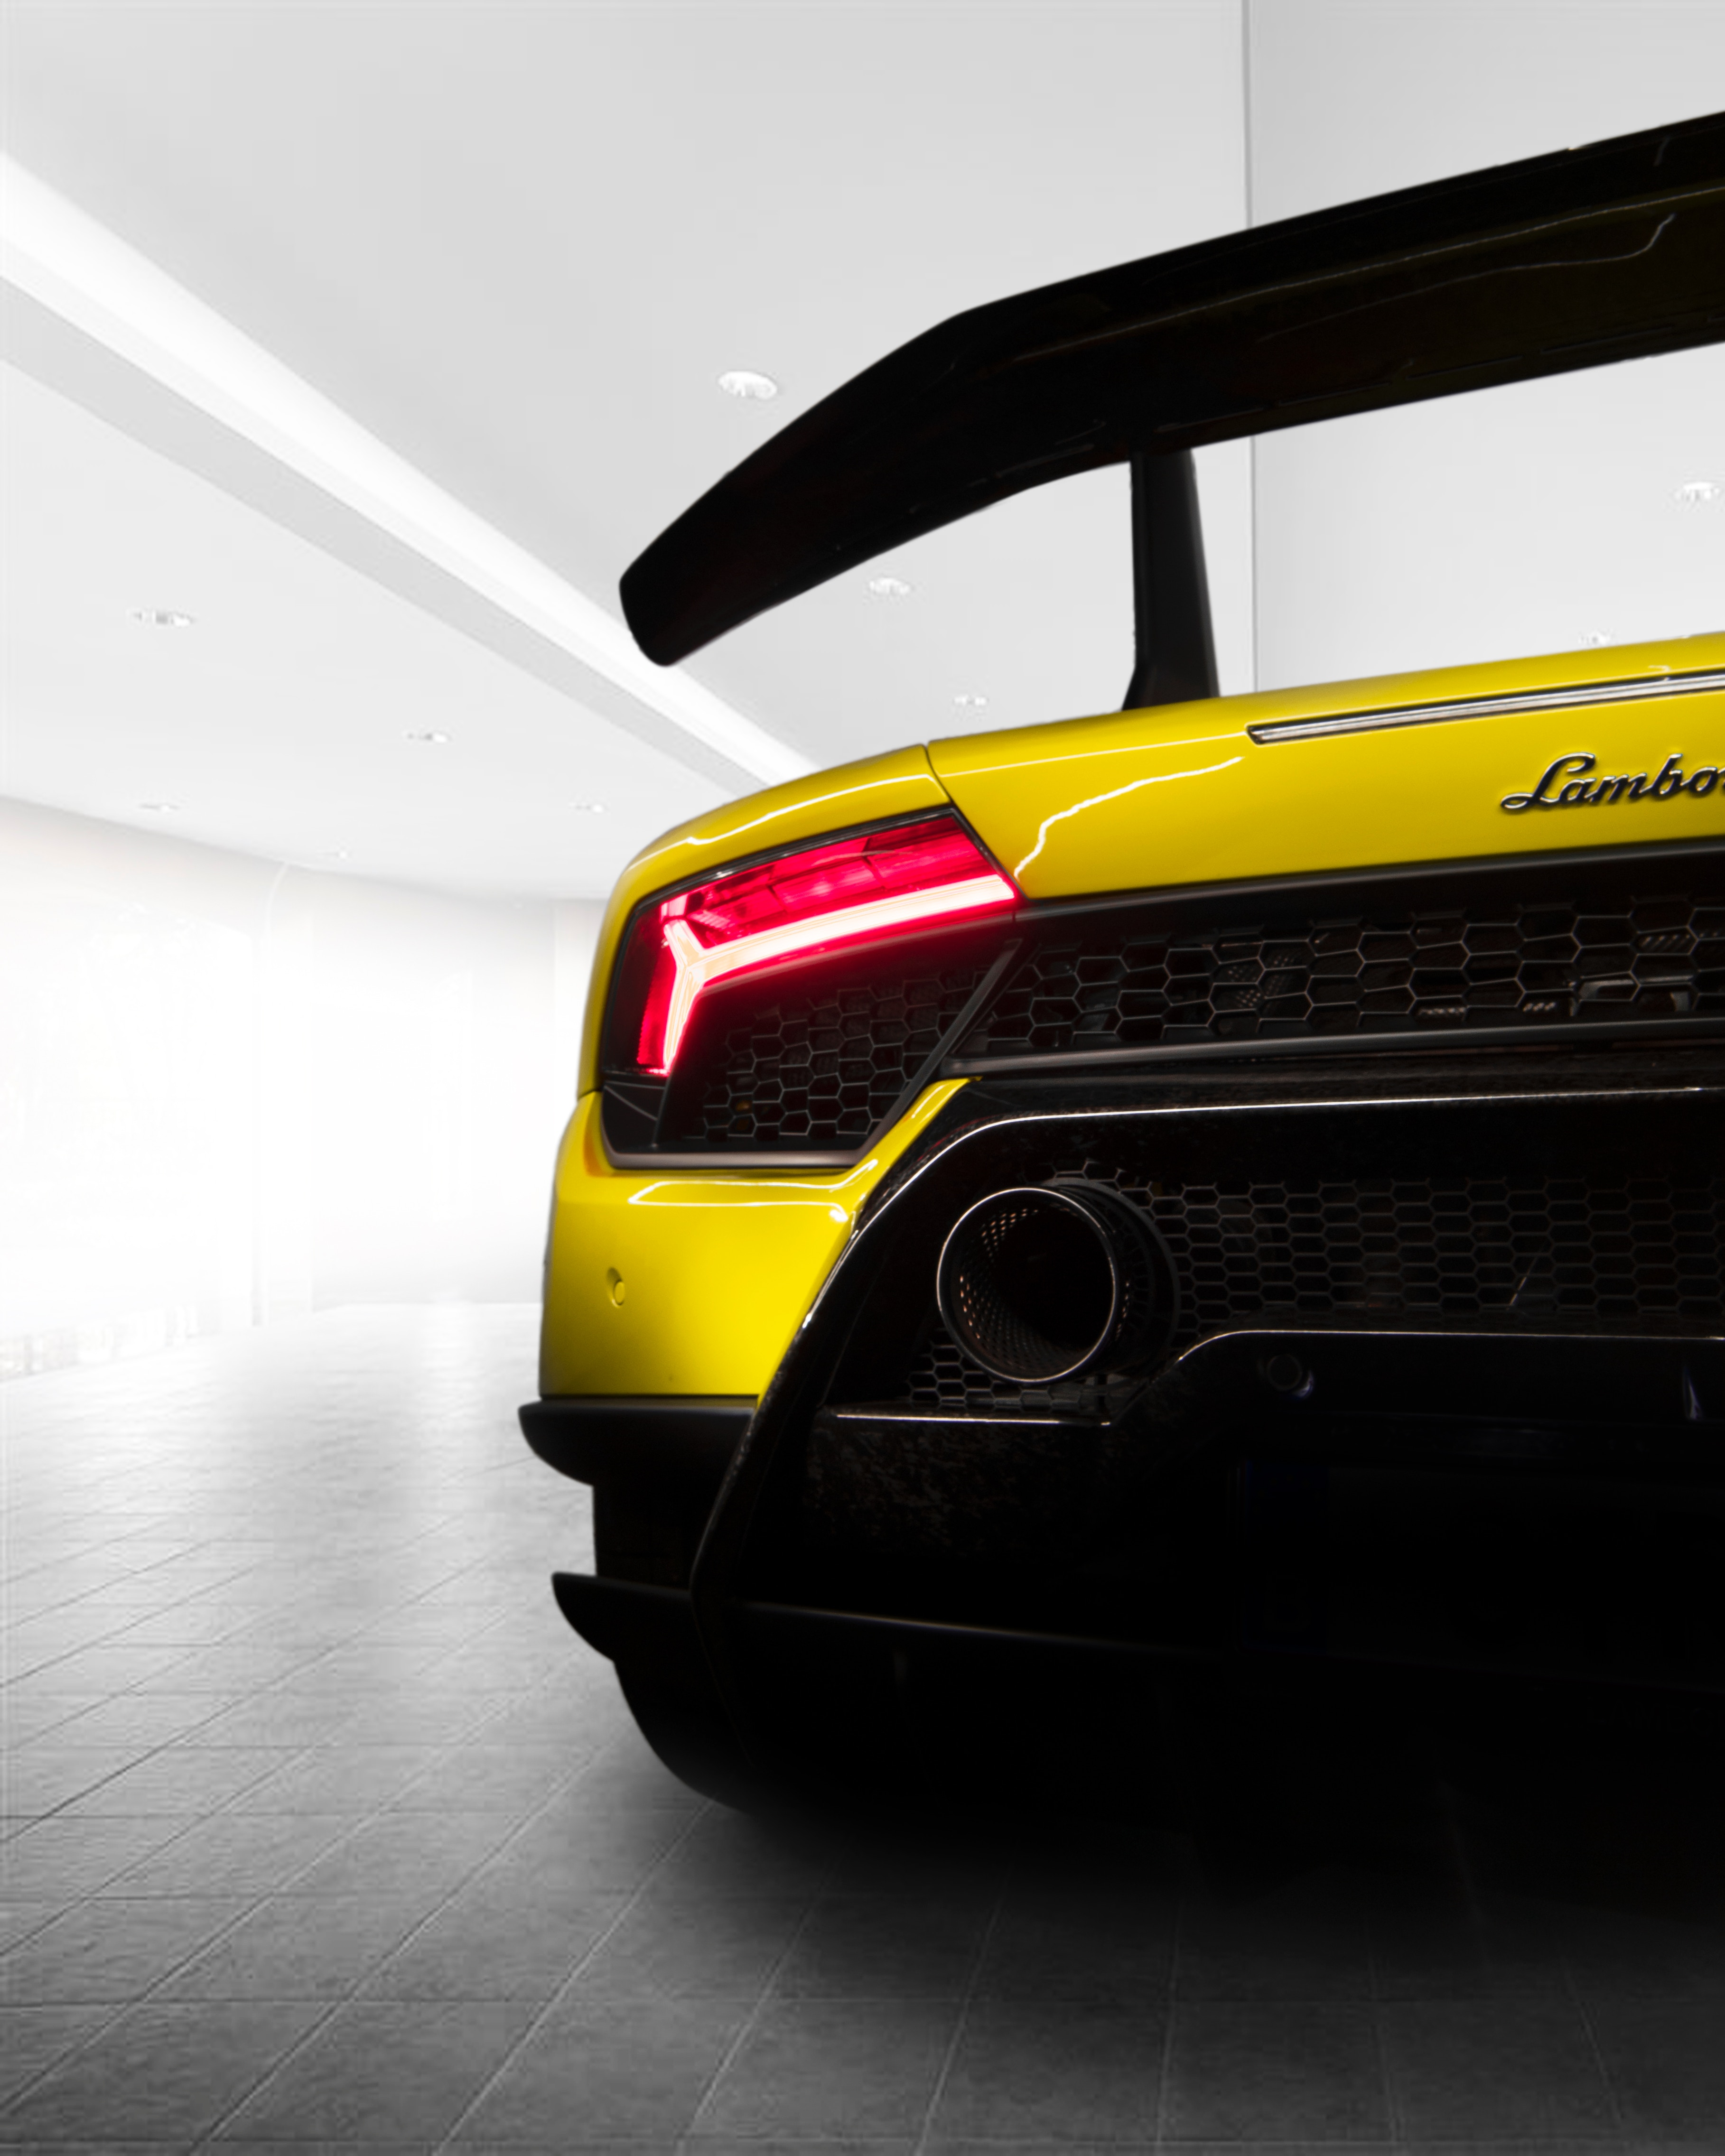 147473 download wallpaper Cars, Lamborghini, Sports Car, Sports, Back View, Rear View, Lamp, Lantern screensavers and pictures for free